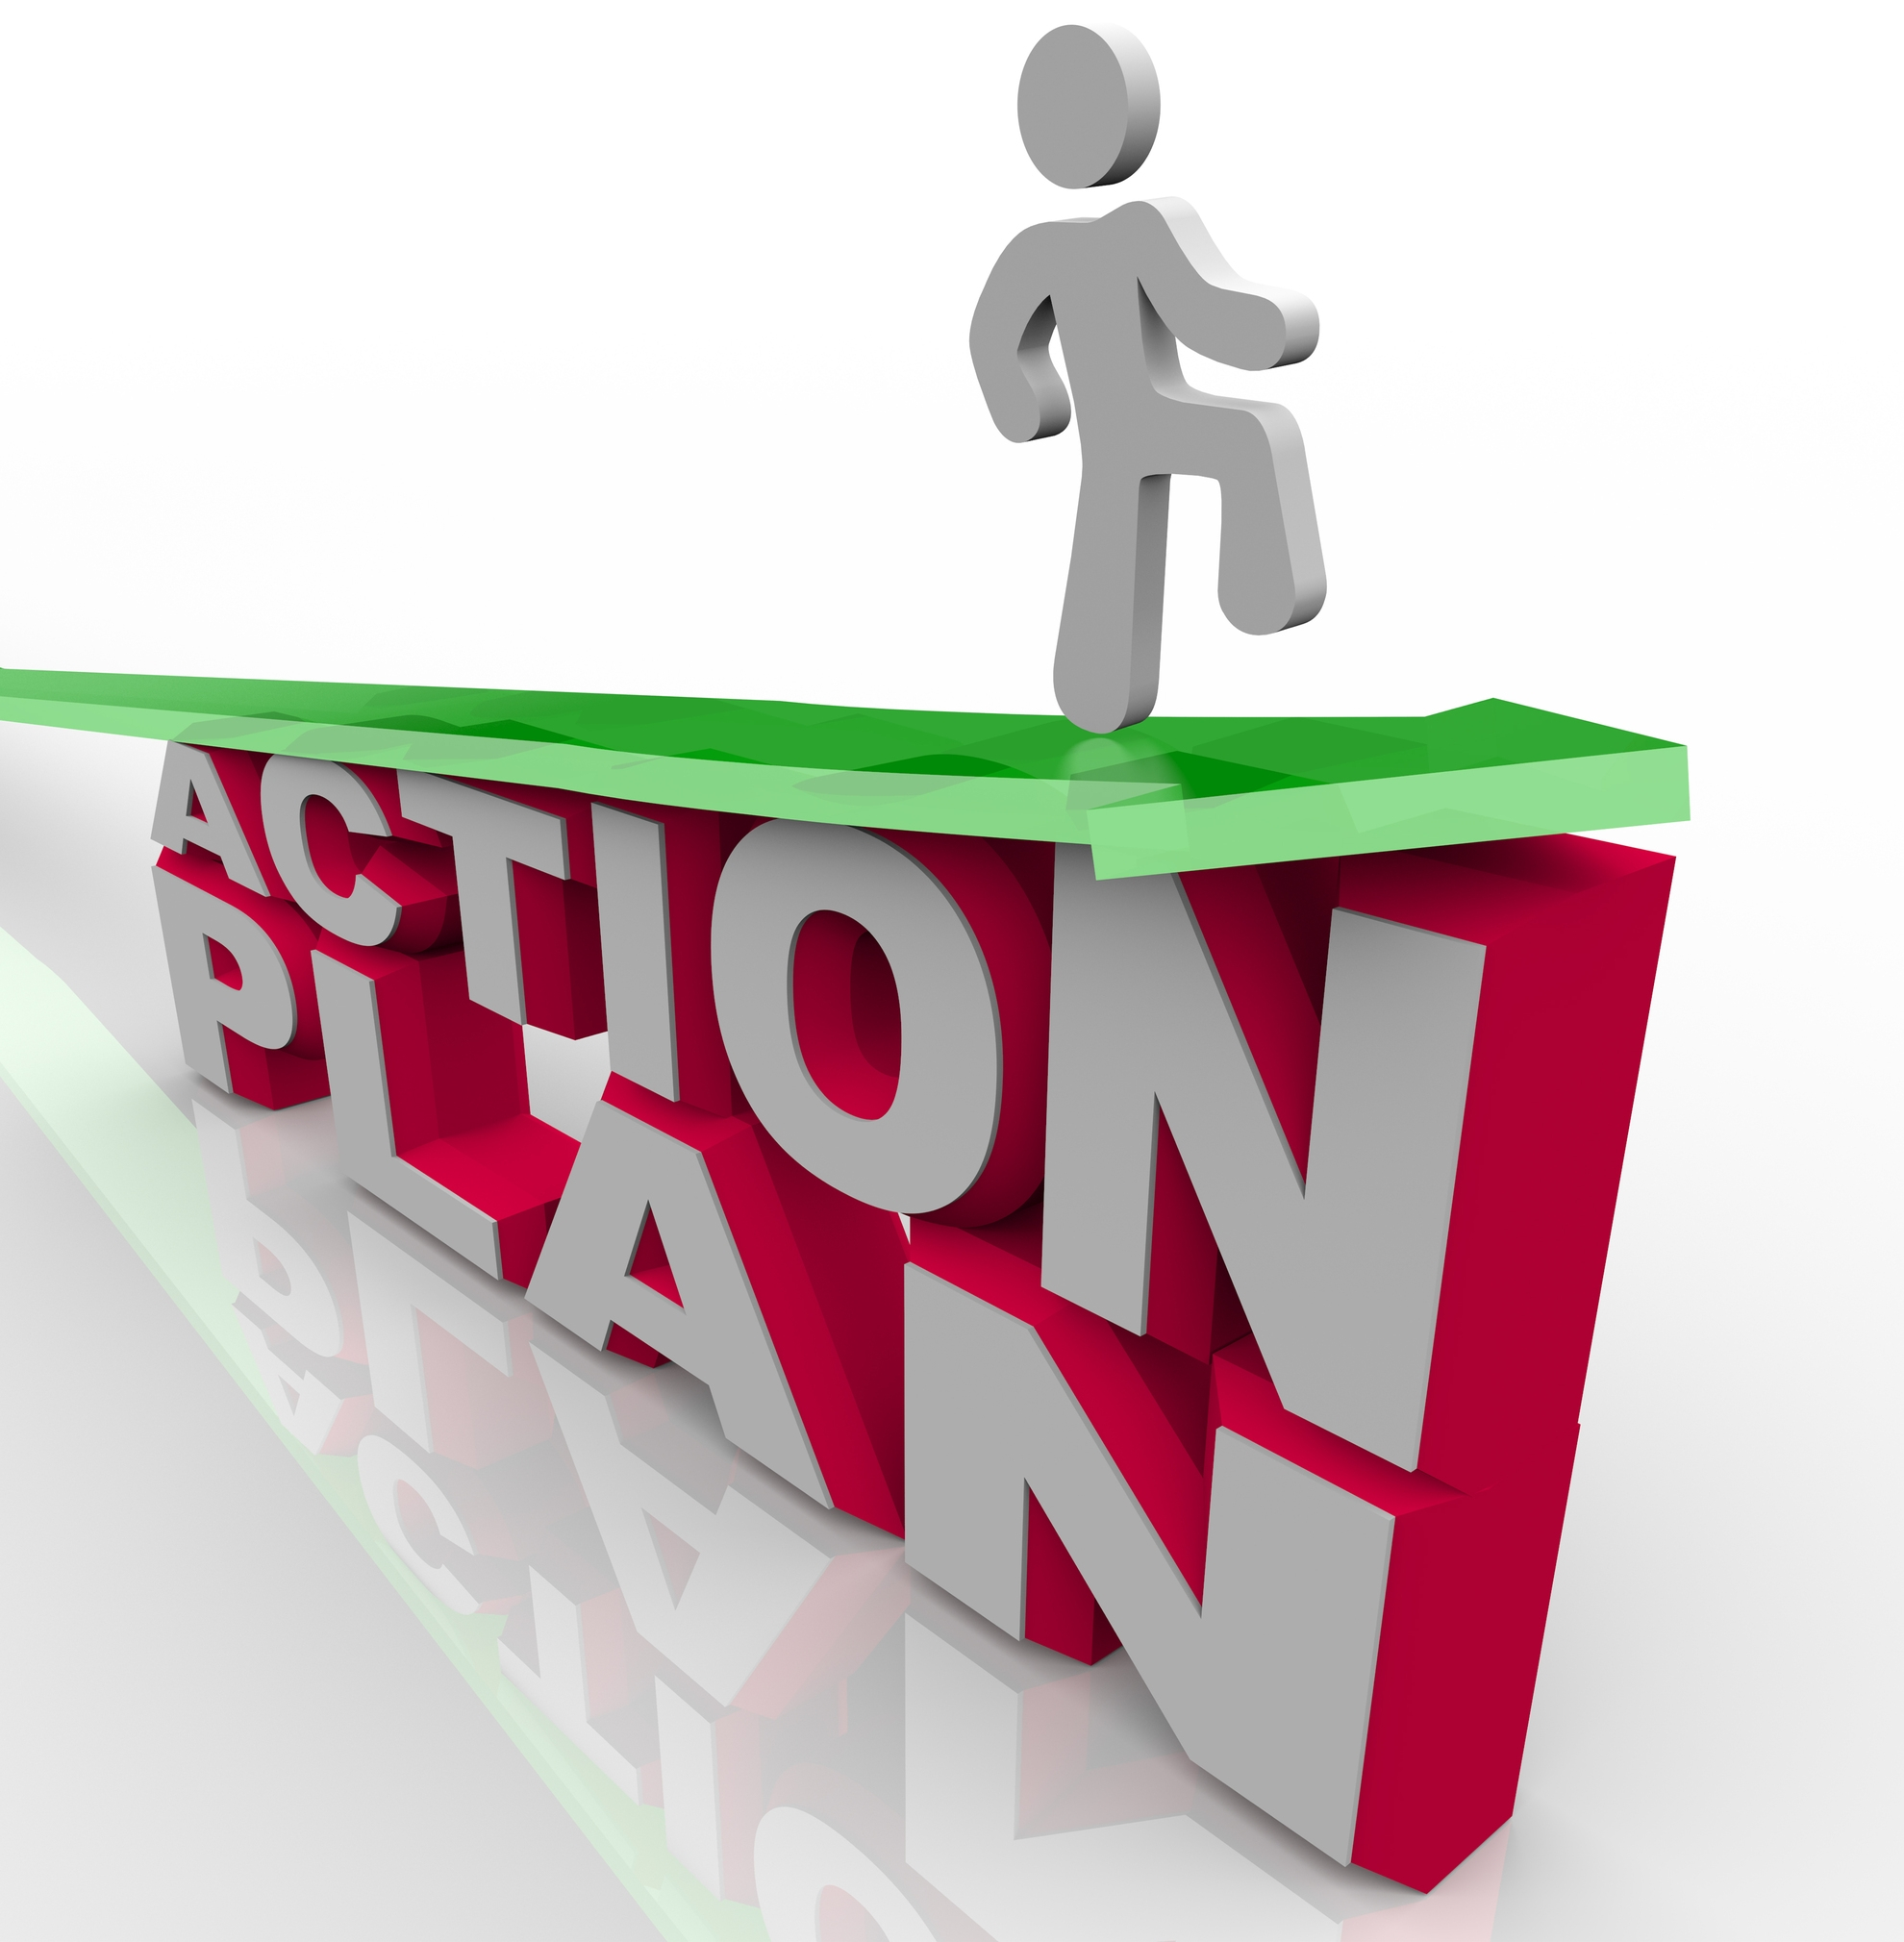 Plan clipart Luxury Action Plan Cliparts Free Download Clip Art Free.